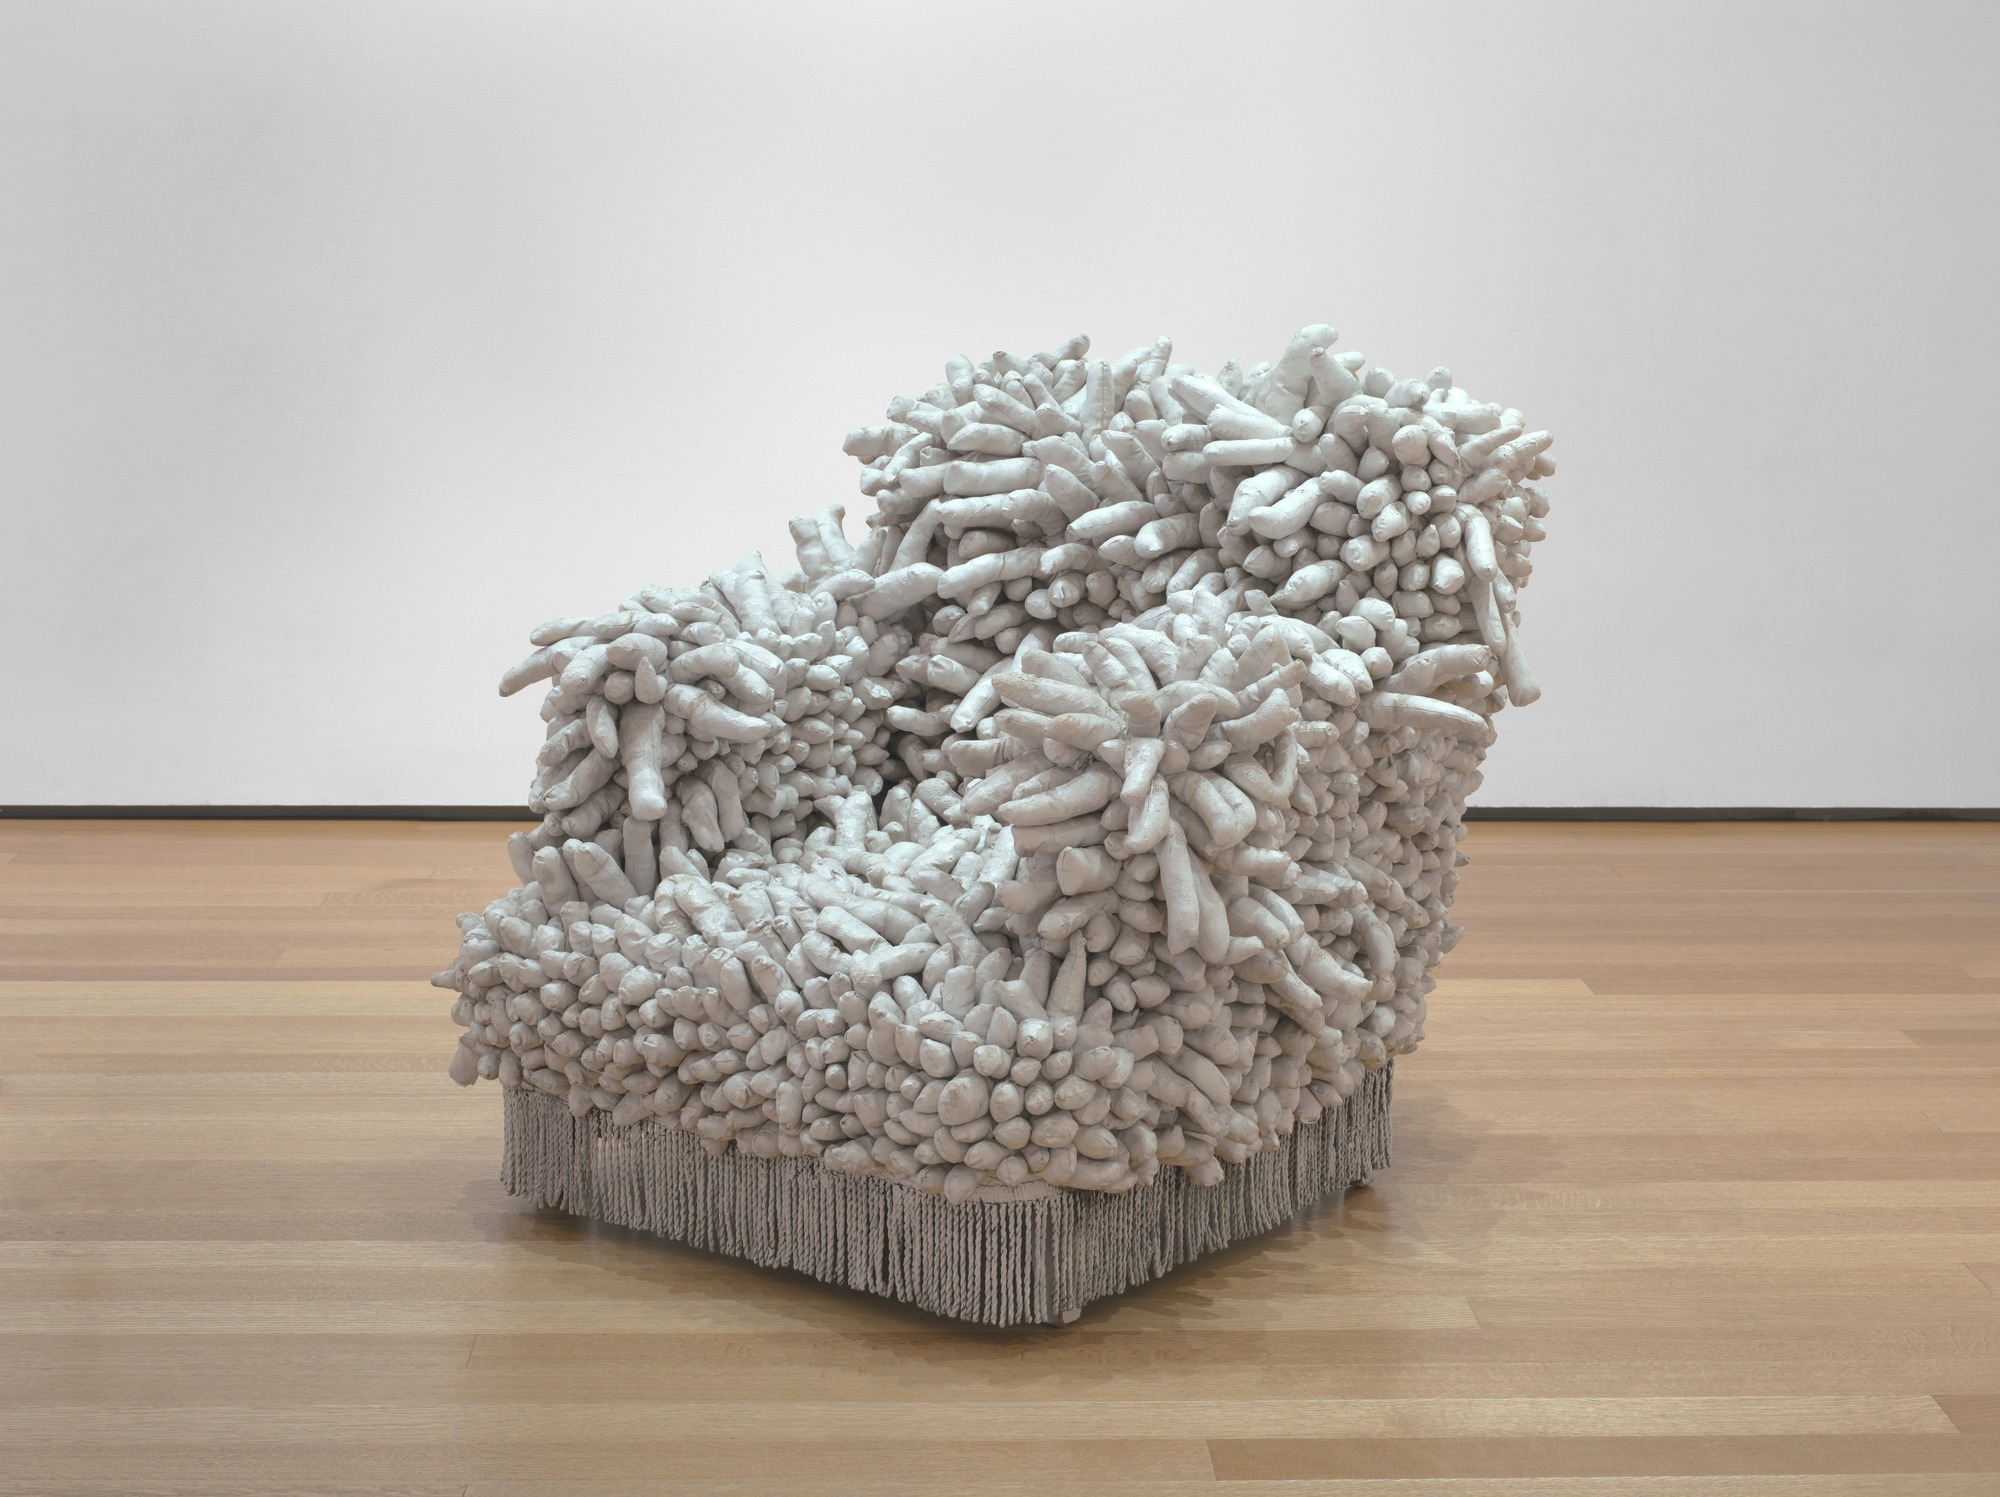 Accumulation No. 1 (1962) in the collection of Museum of Modern Art